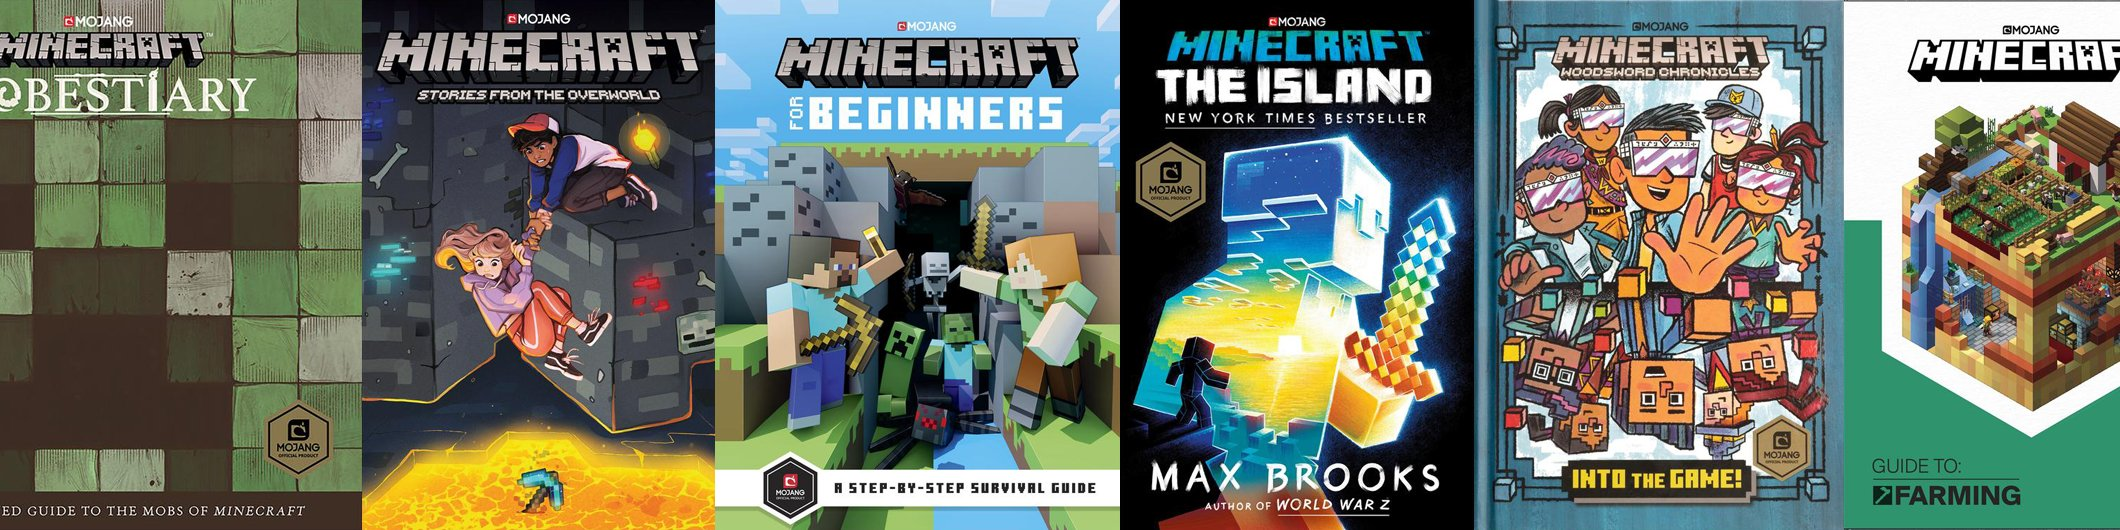 Assorted Minecraft products photo.